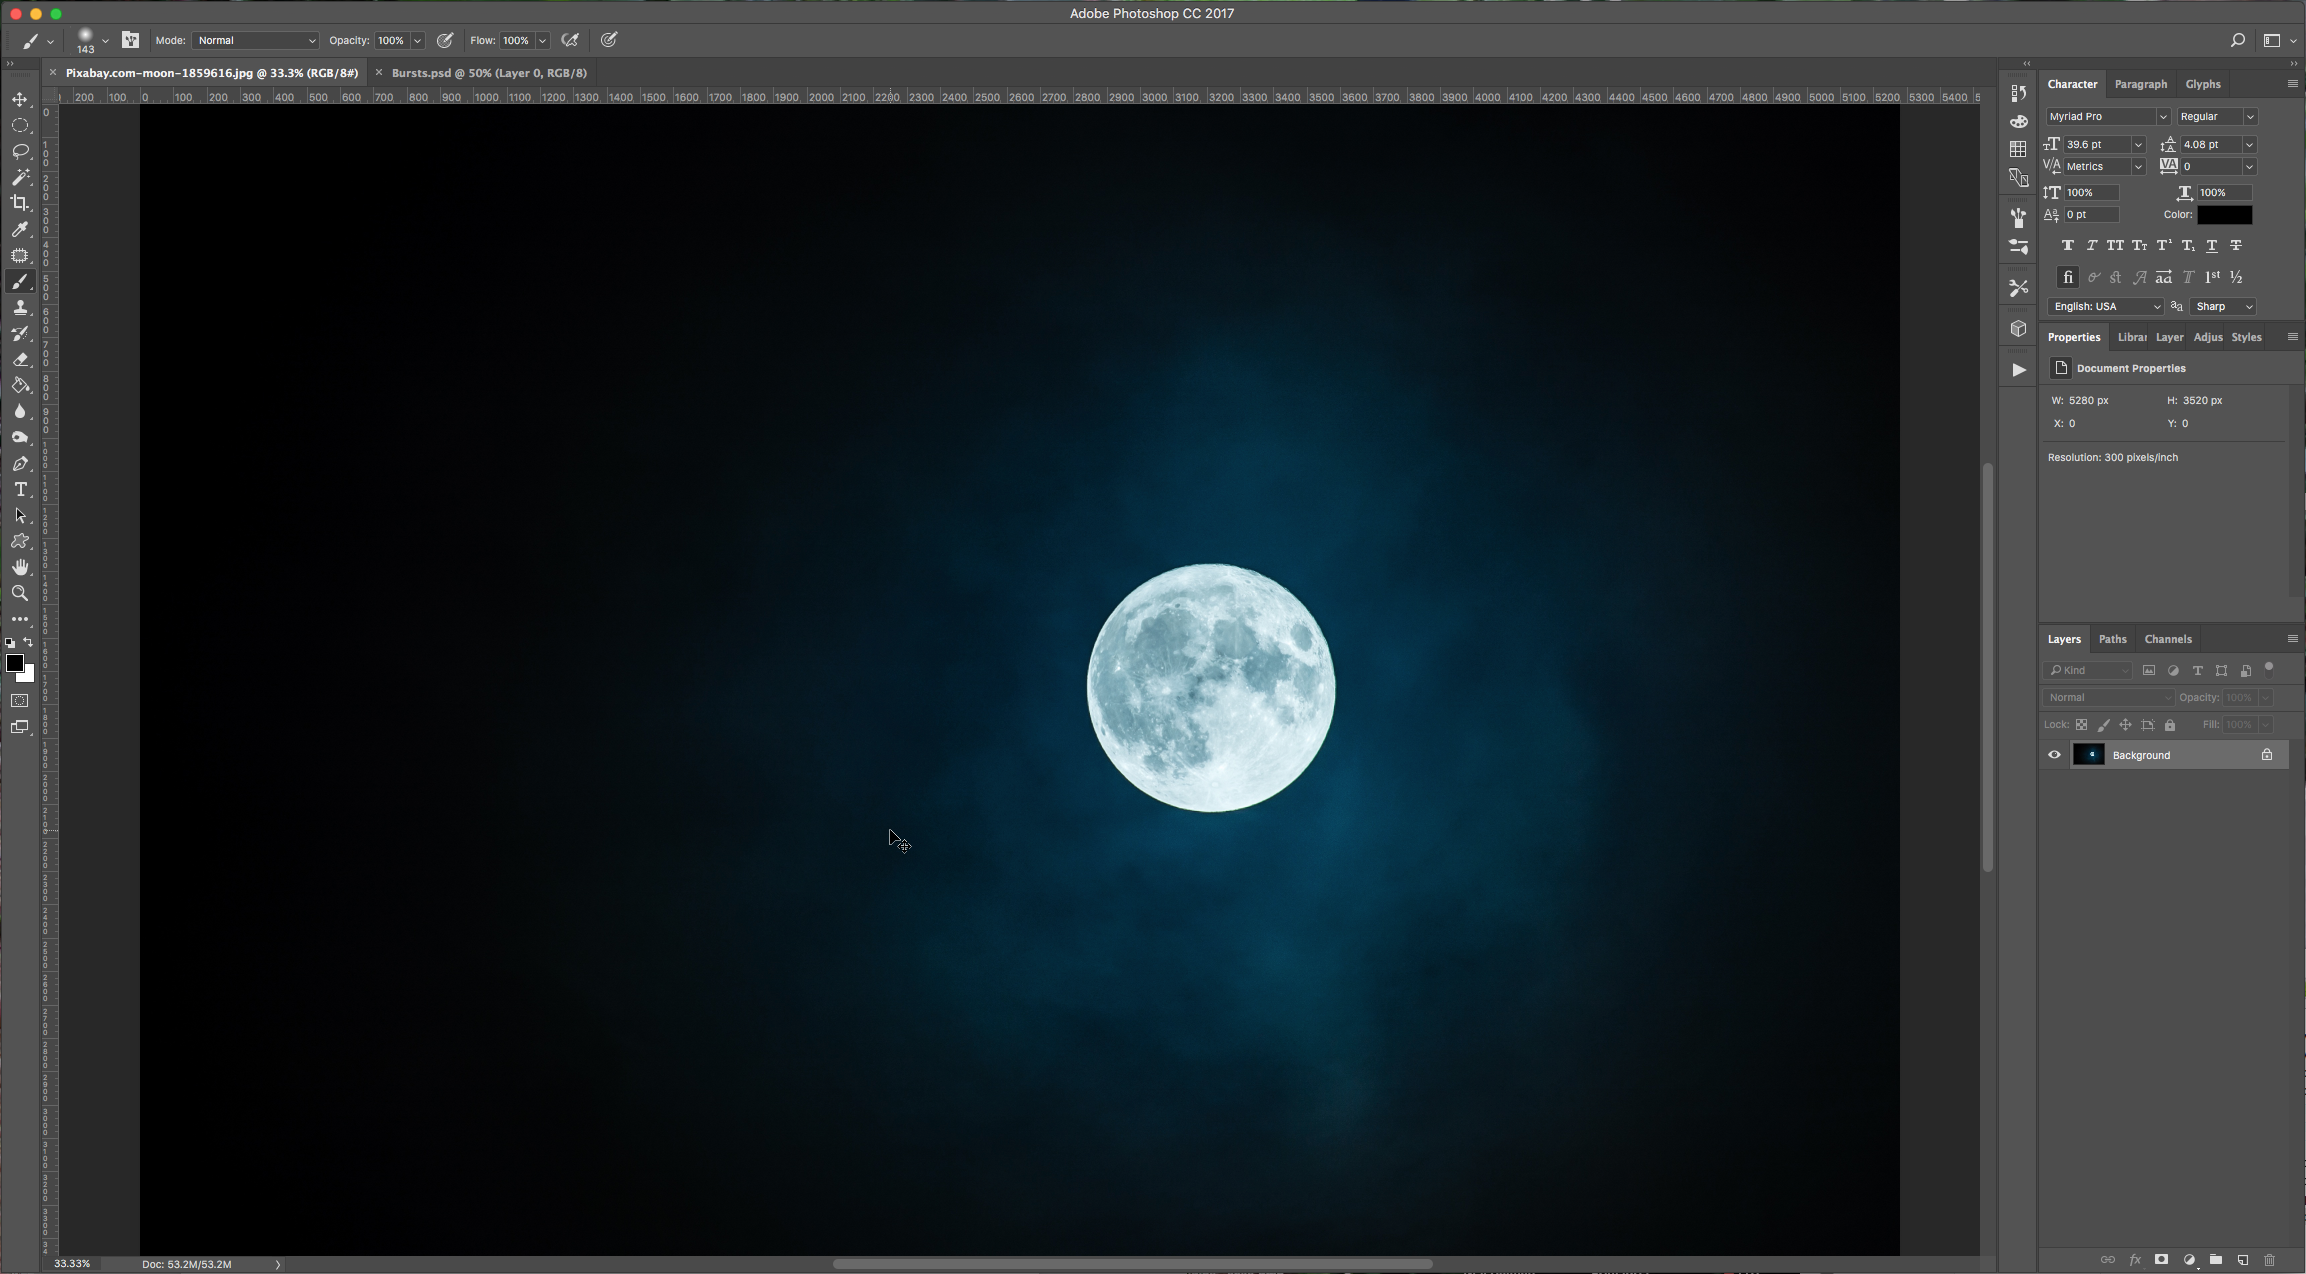 how to change background colour in photoshop under image